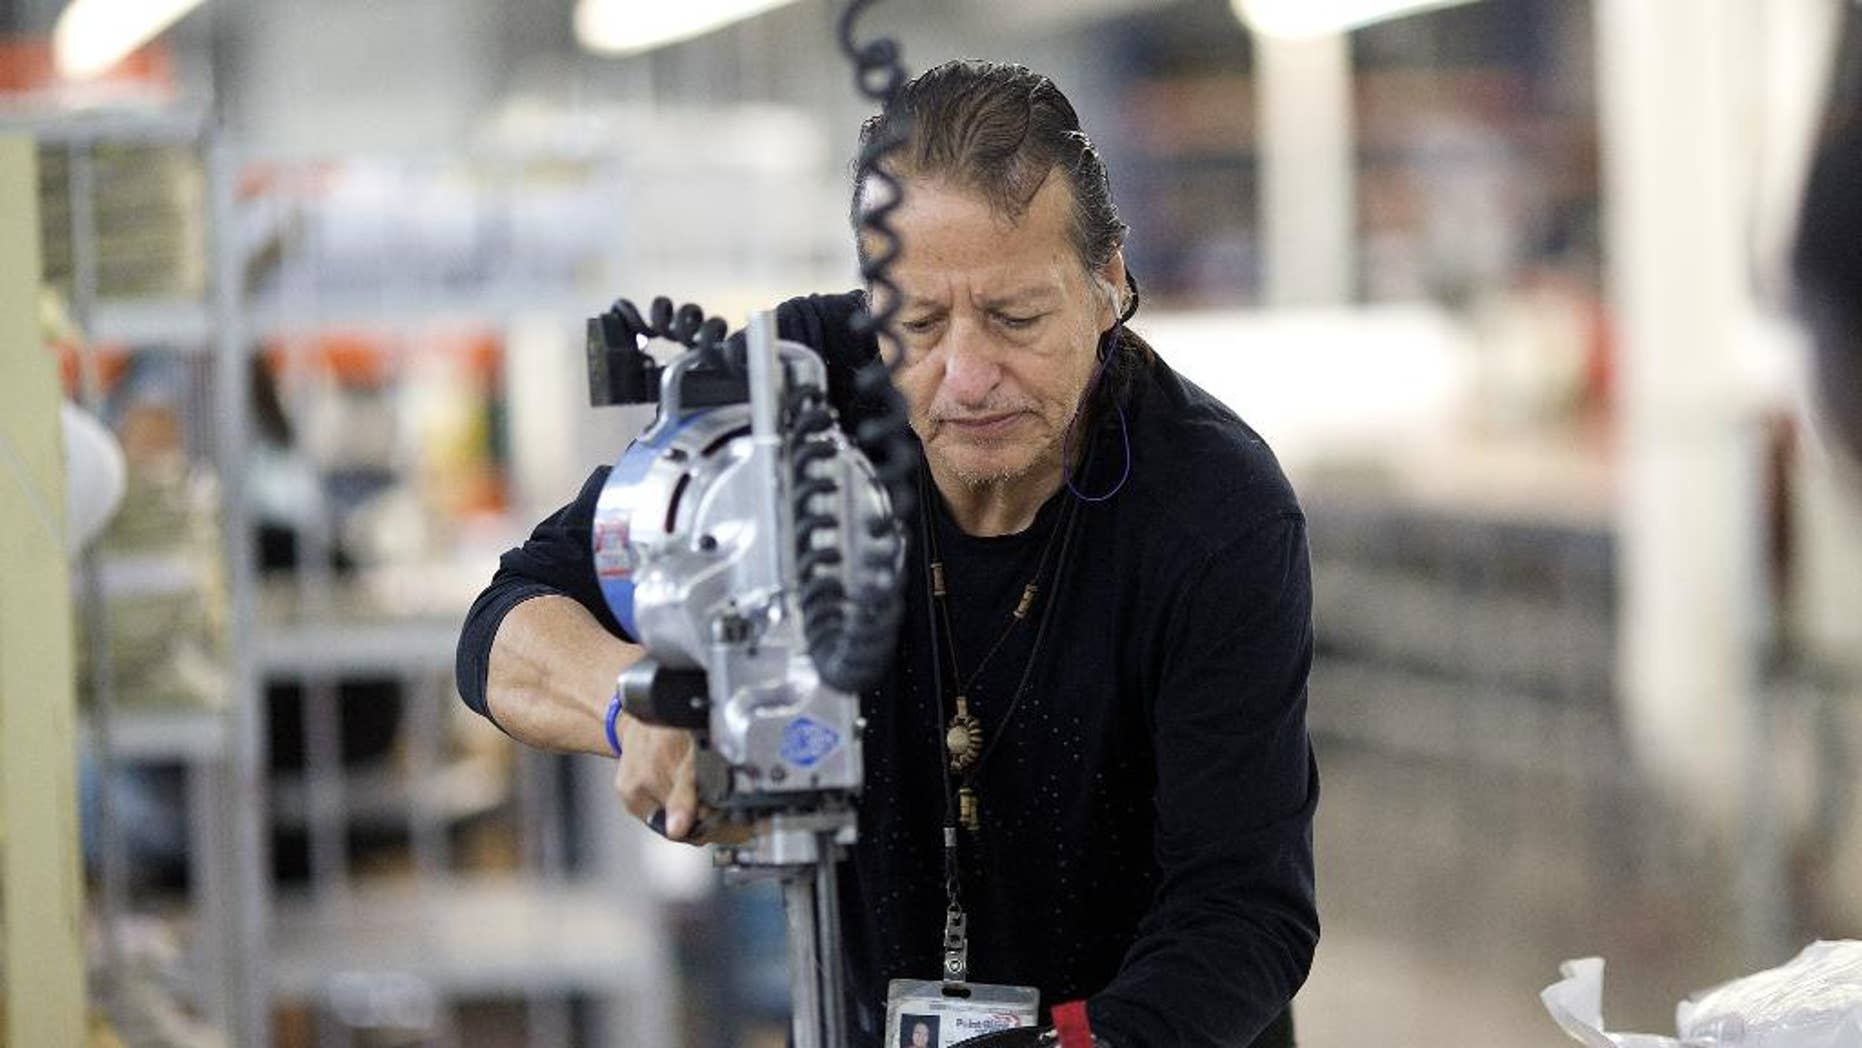 In this Sept. 19, 2014 photo, Adolfo Garzon cuts pieces for body armor at the Point Blank Body Armor factory in Pompano Beach, Fla. The Labor Department releases fourth-quarter productivity data on Thursday, March 5, 2015. (AP Photo/J Pat Carter)